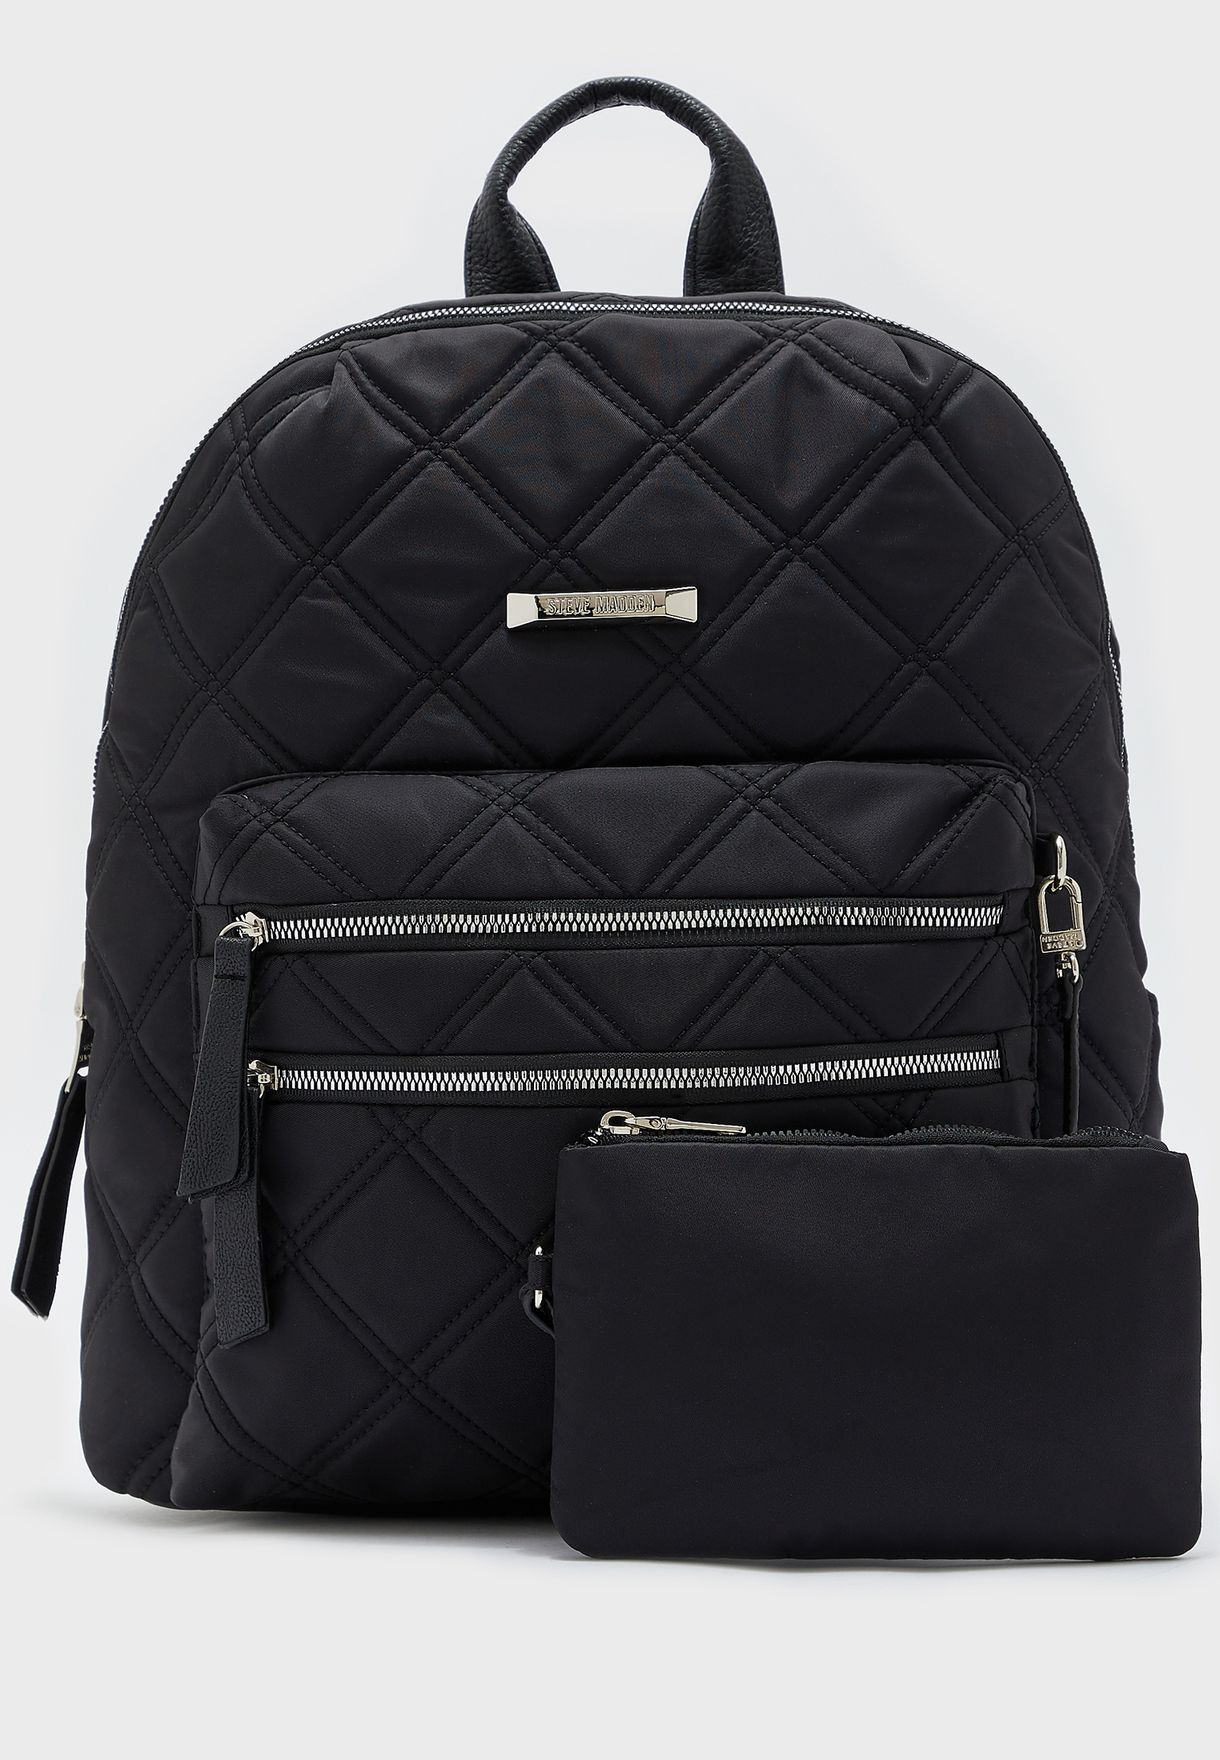 Do326025 Backpack